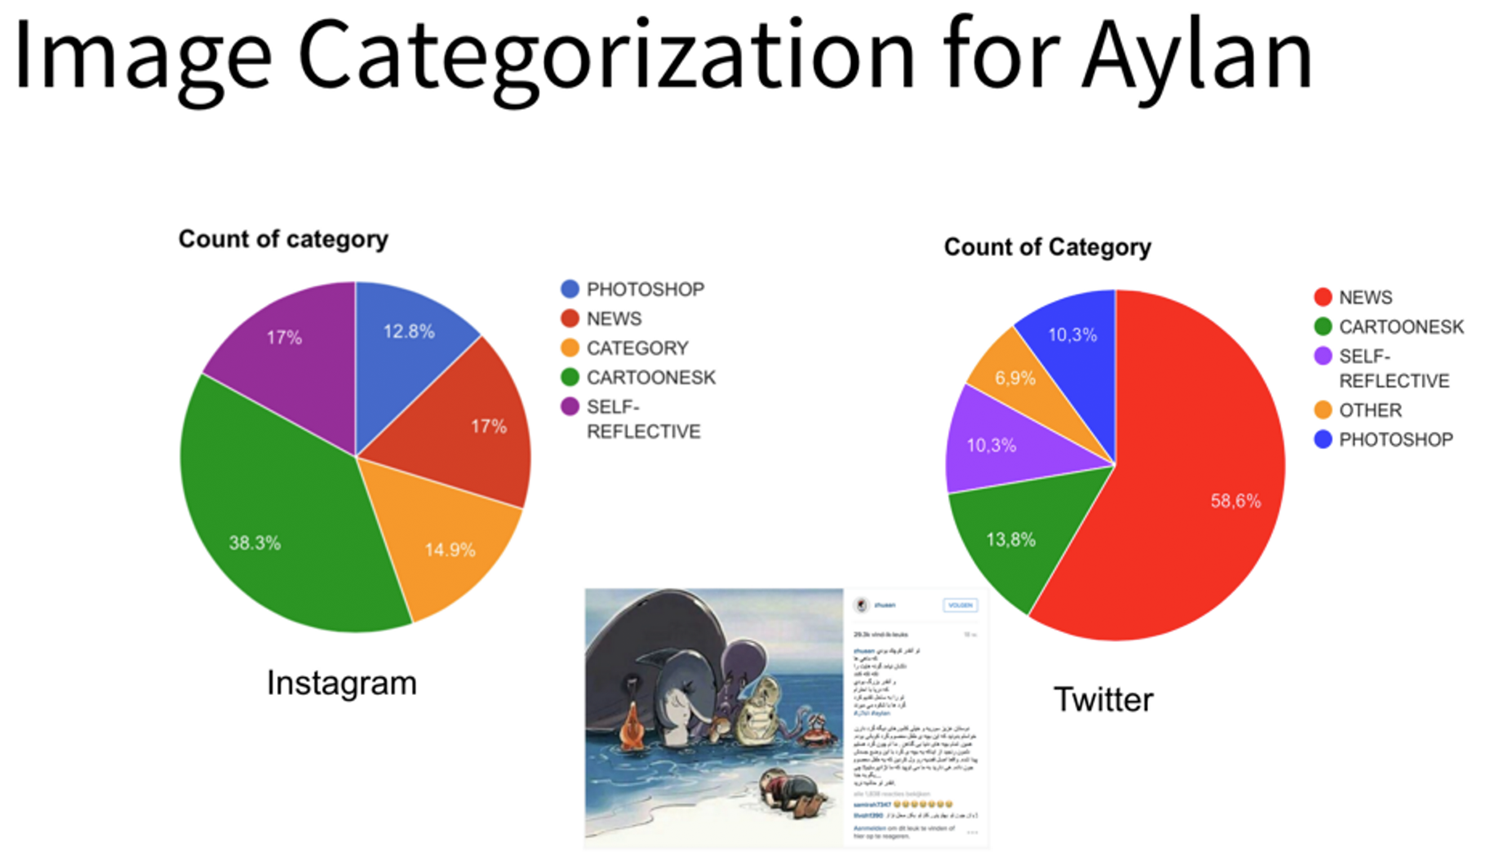 10-image-categorization-aylan.png